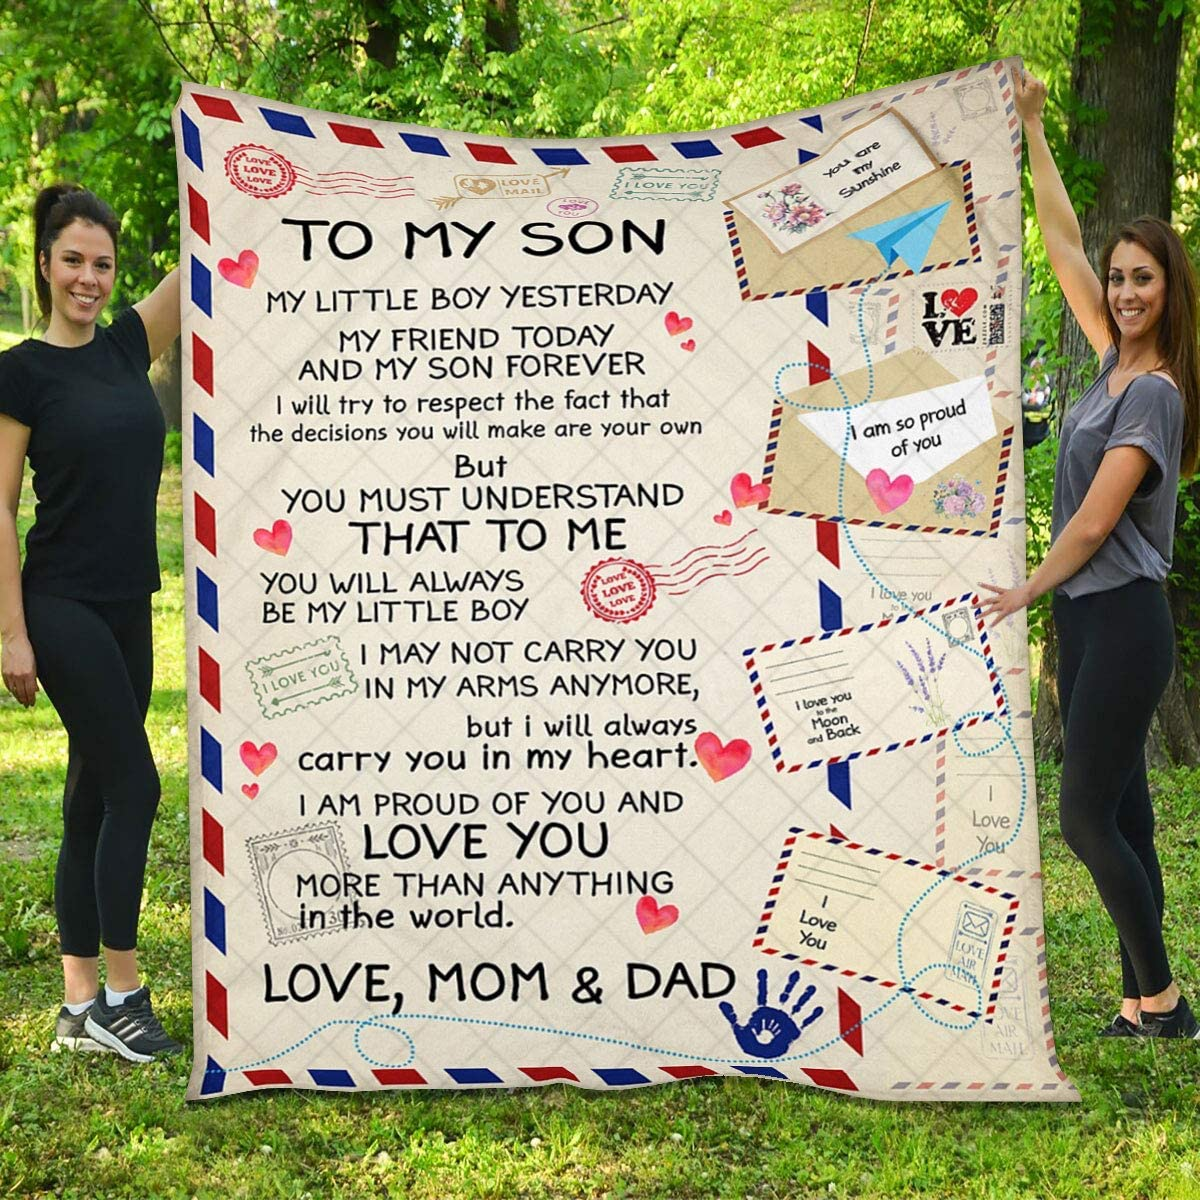 Quilt for Son - Air Mail I Gifts You of Mo from Proud Am Max 57% OFF Cheap SALE Start